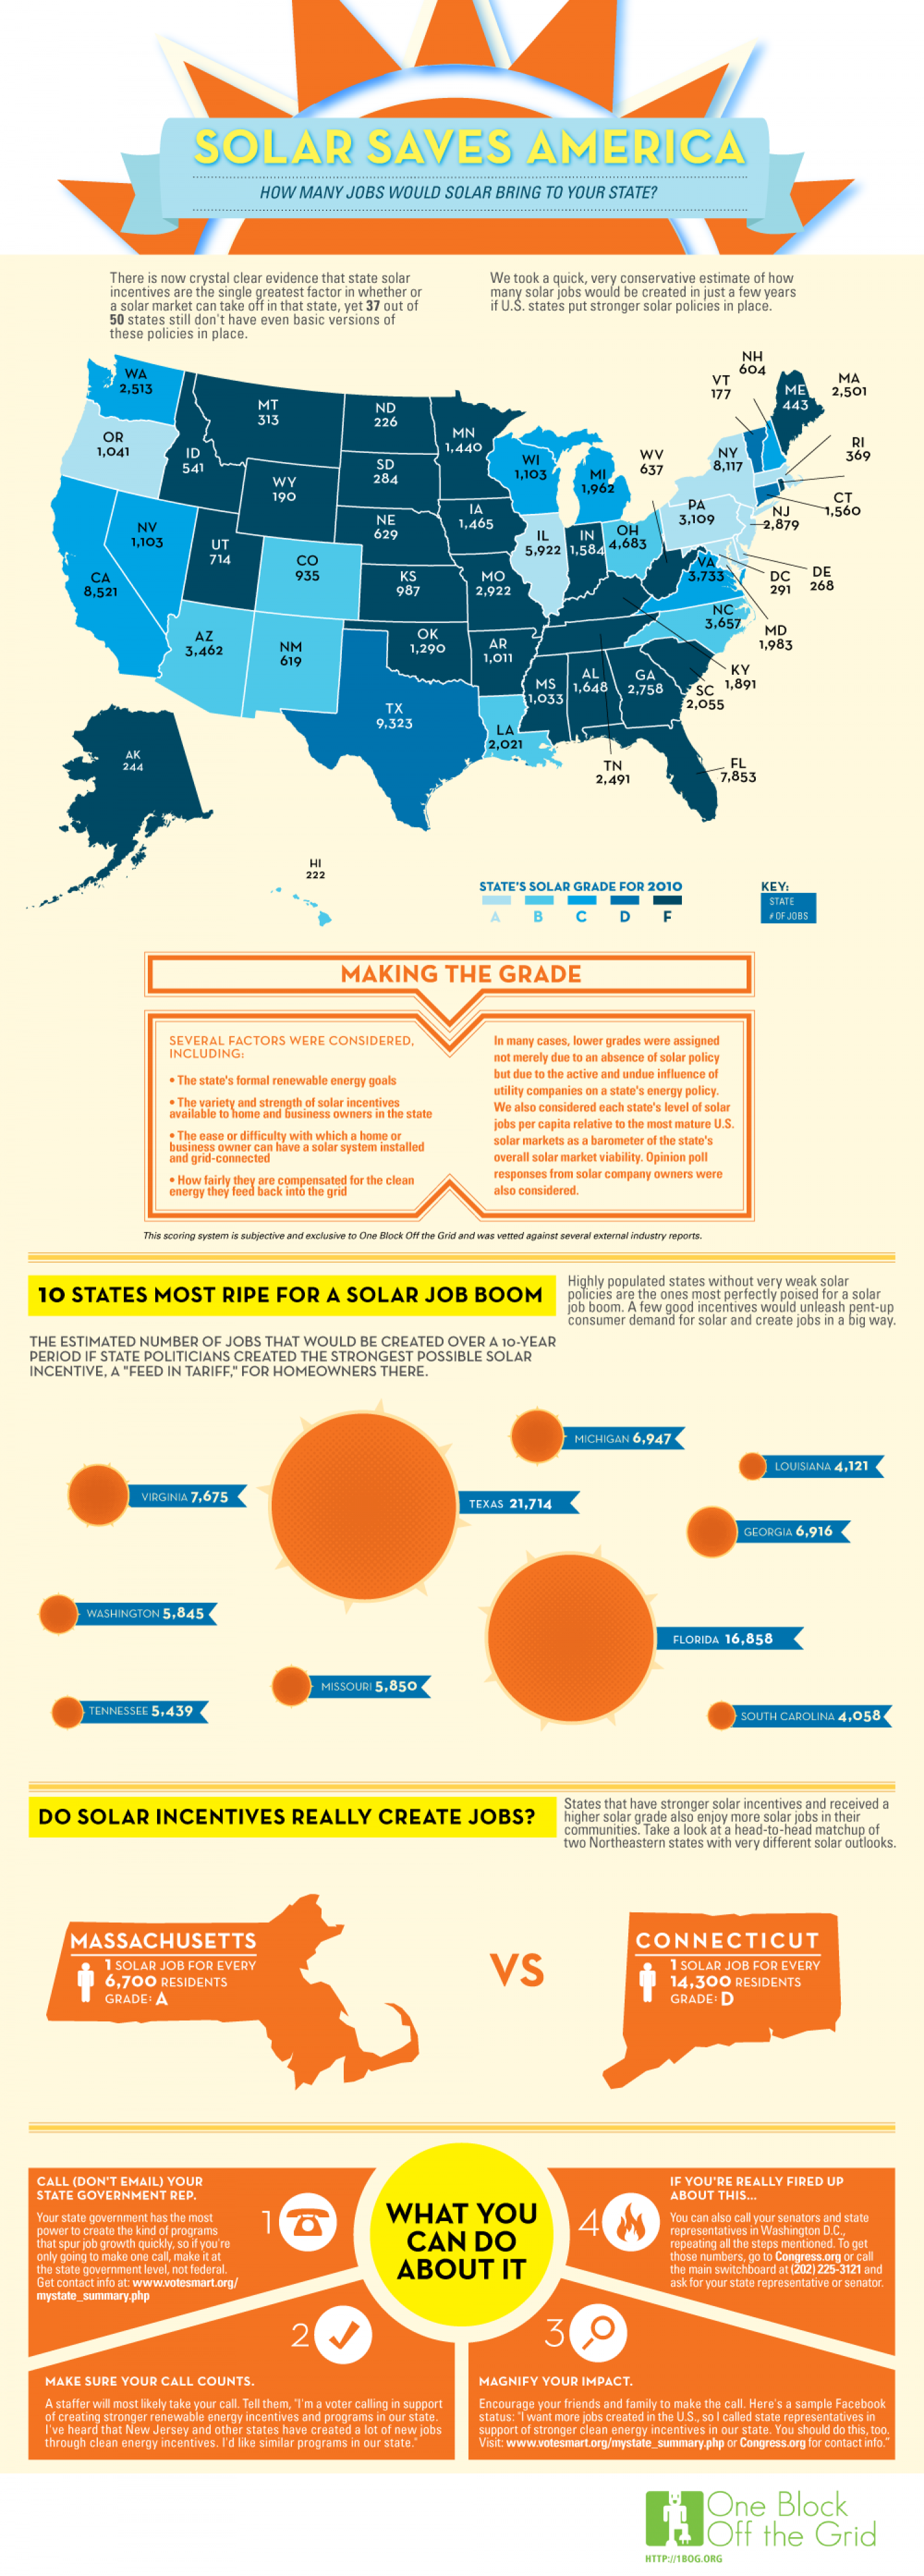 Solar Saves America: How Many Jobs Would Solar Bring to Your State? Infographic